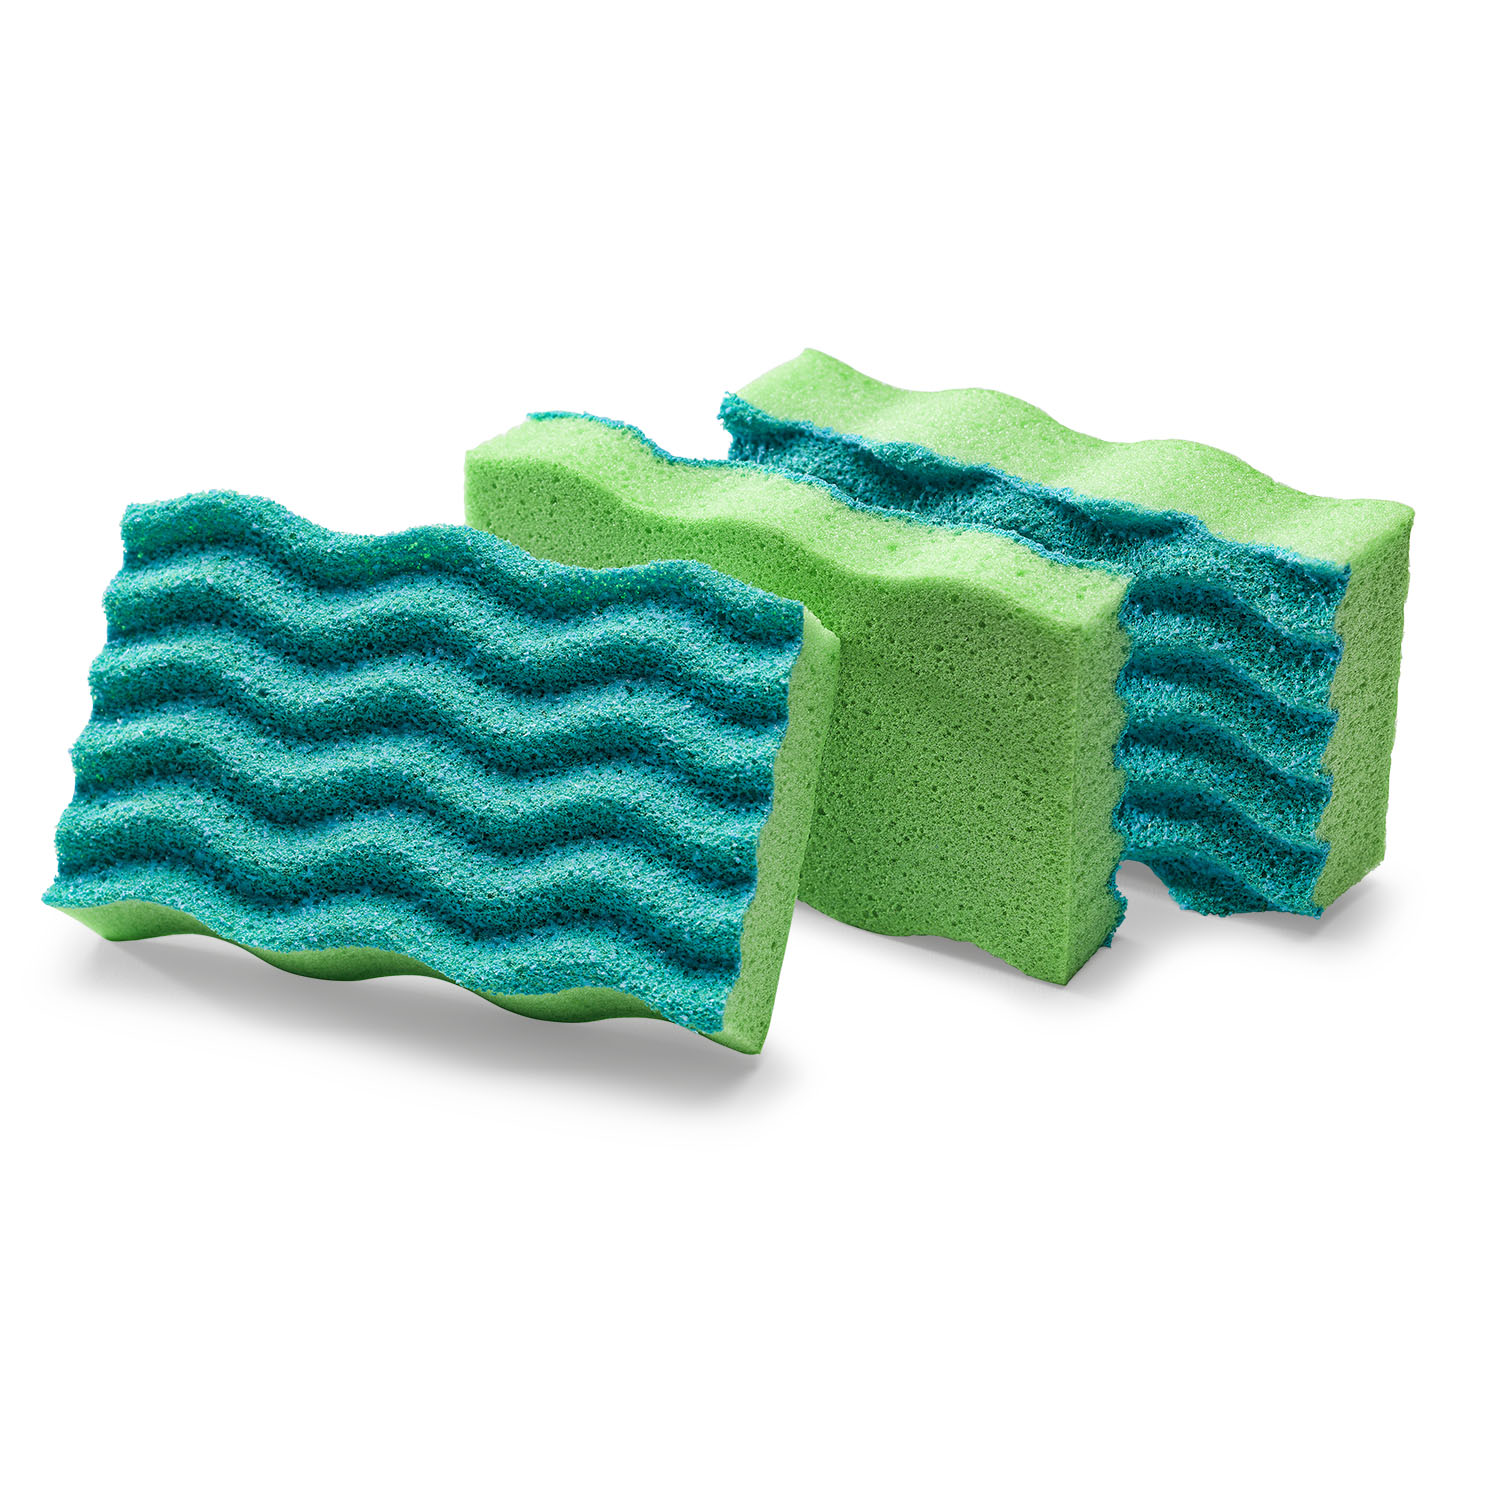 Libman Anti-Bacterial Sponges, Green, 3 count